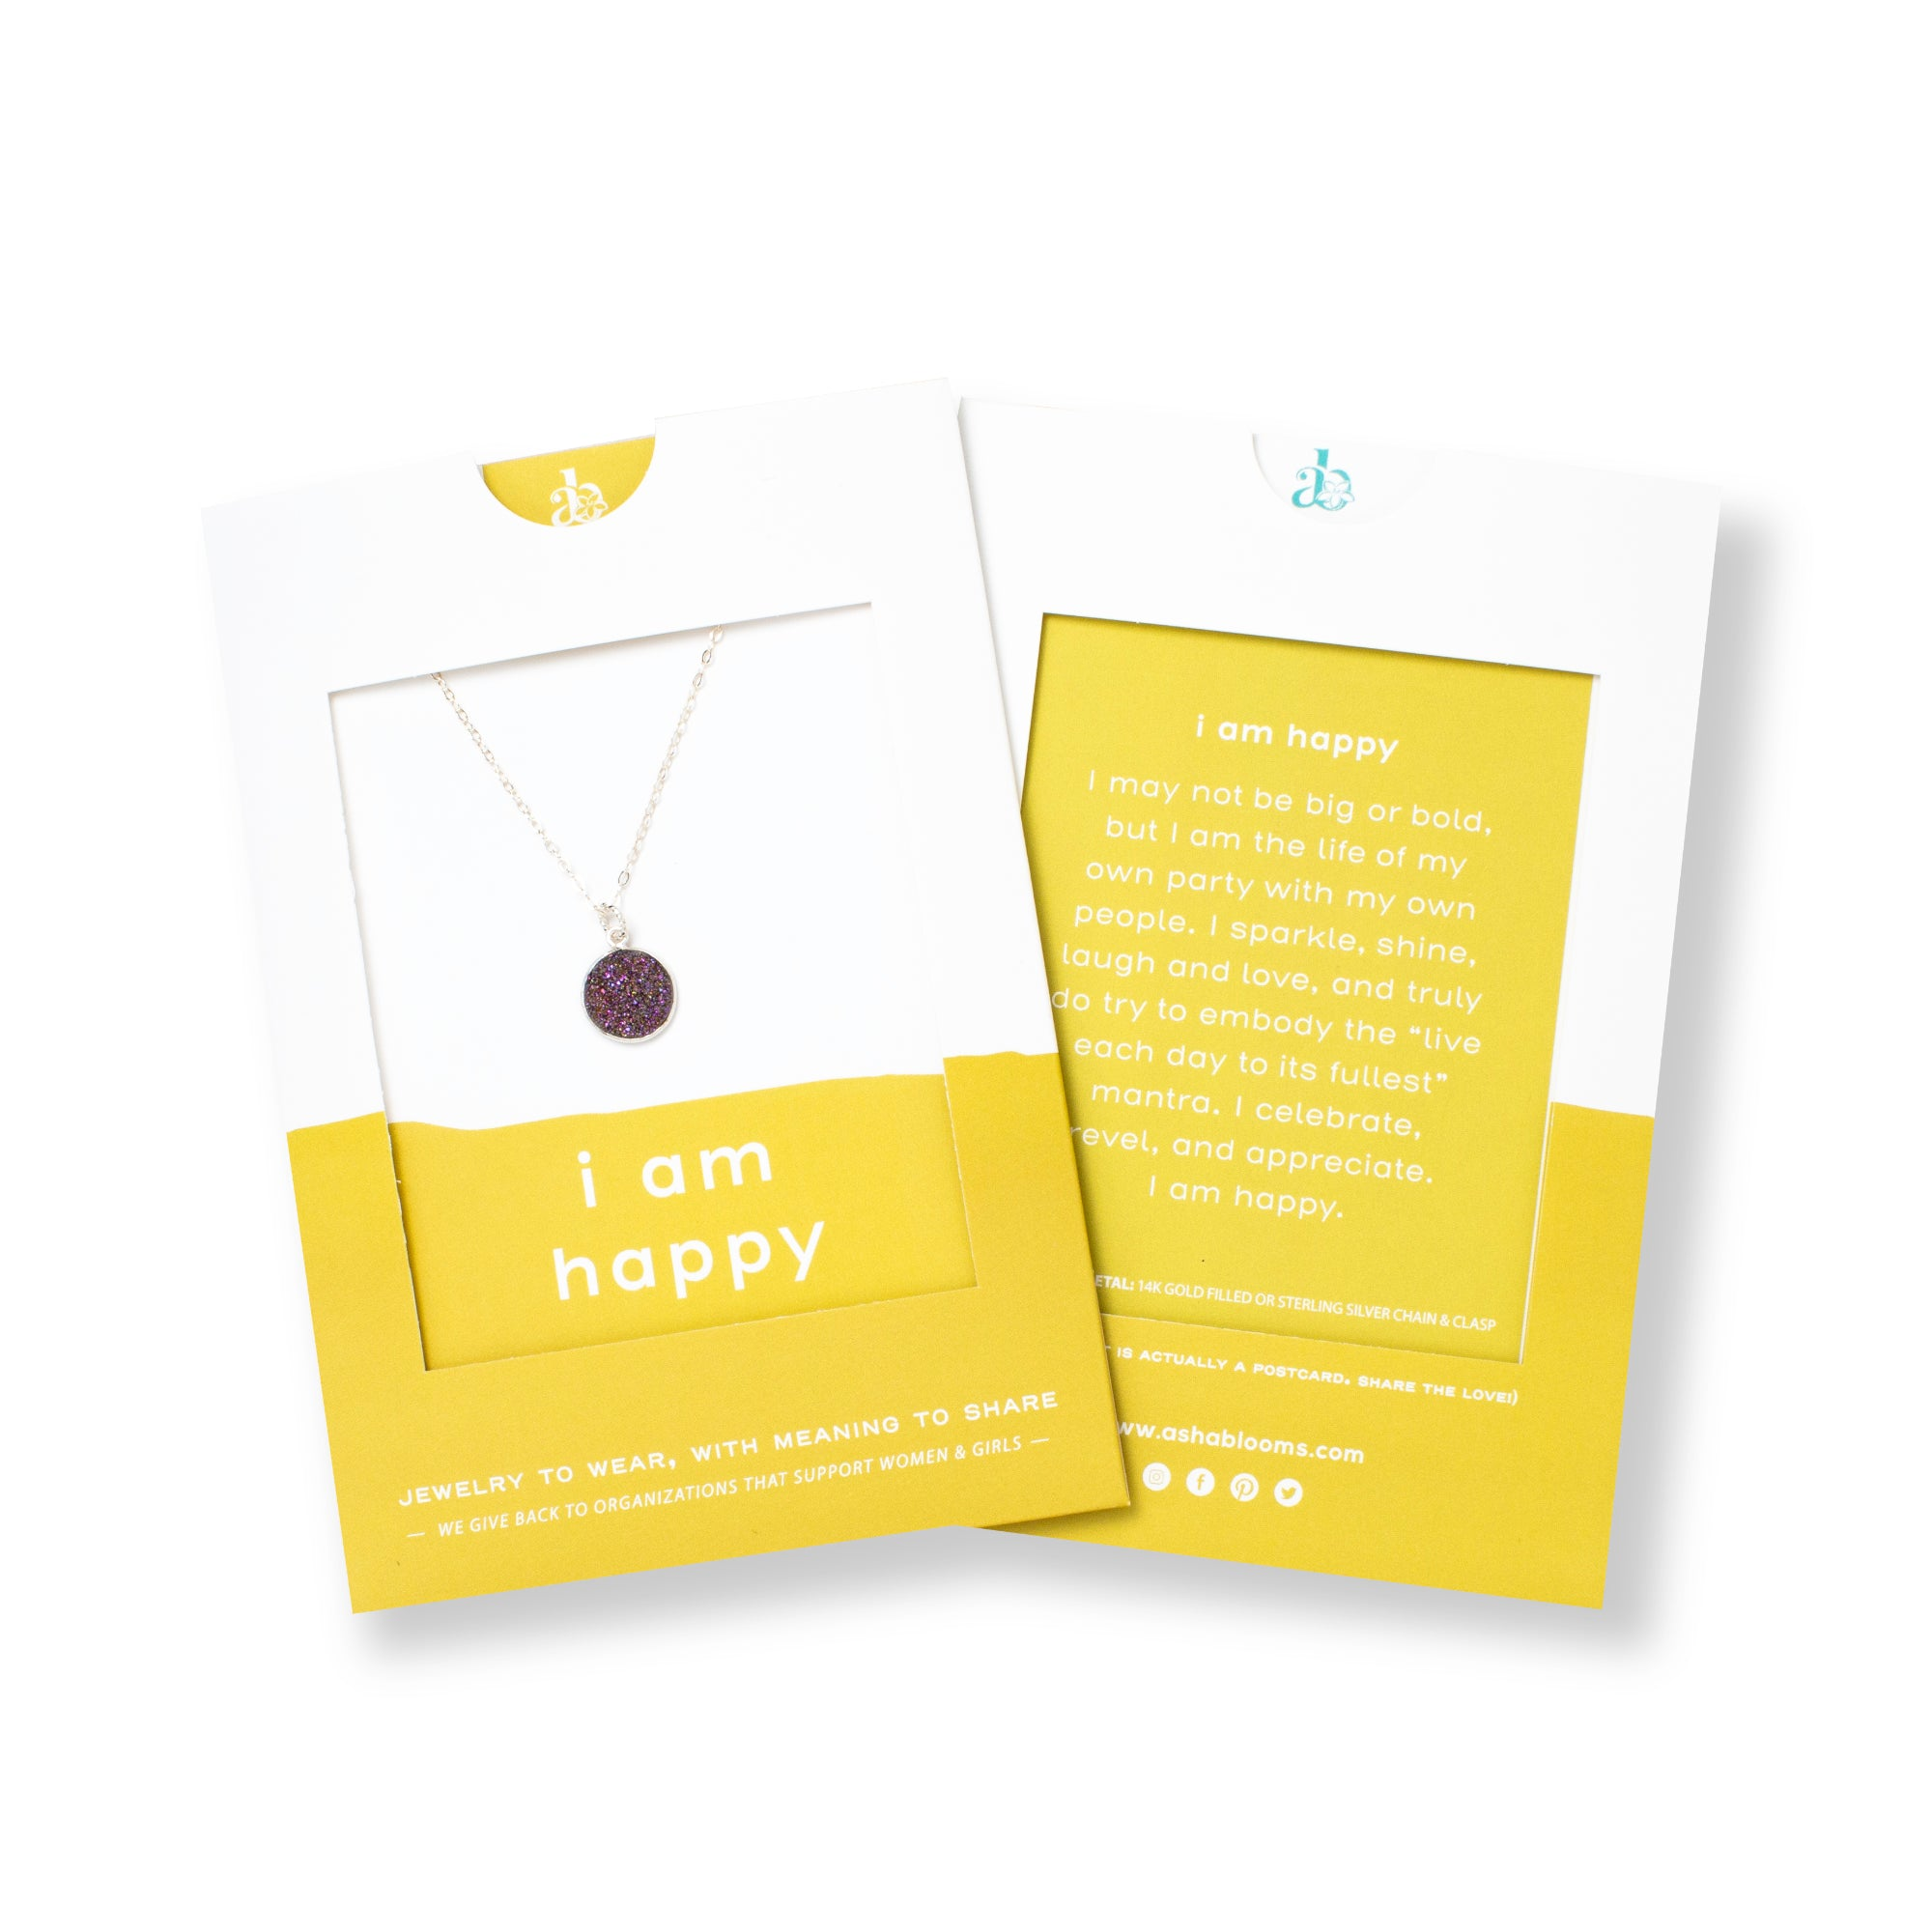 Circular Purple Druzy and Silver Necklace 'I Am Happy' in Yellow Gift Message Sleeve Packaging Photo by Asha Blooms